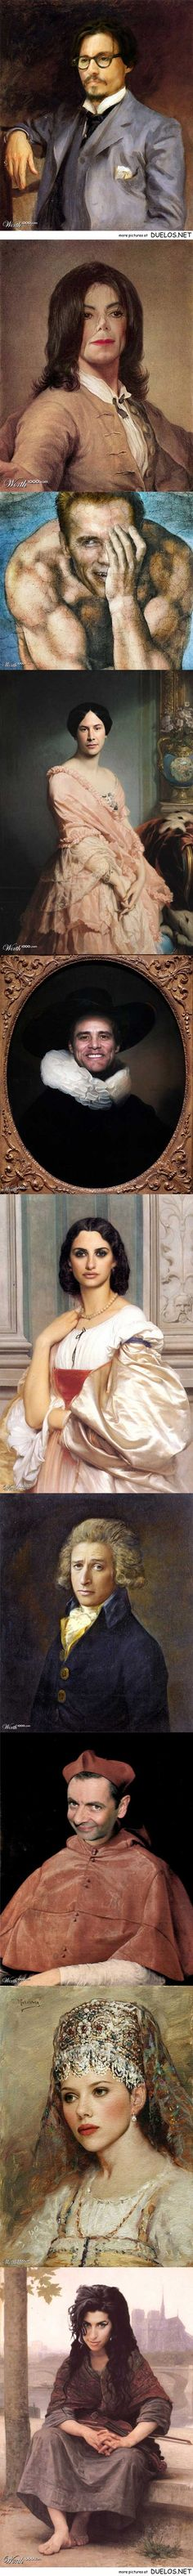 Classic paintings redone with celebrity faces - 1